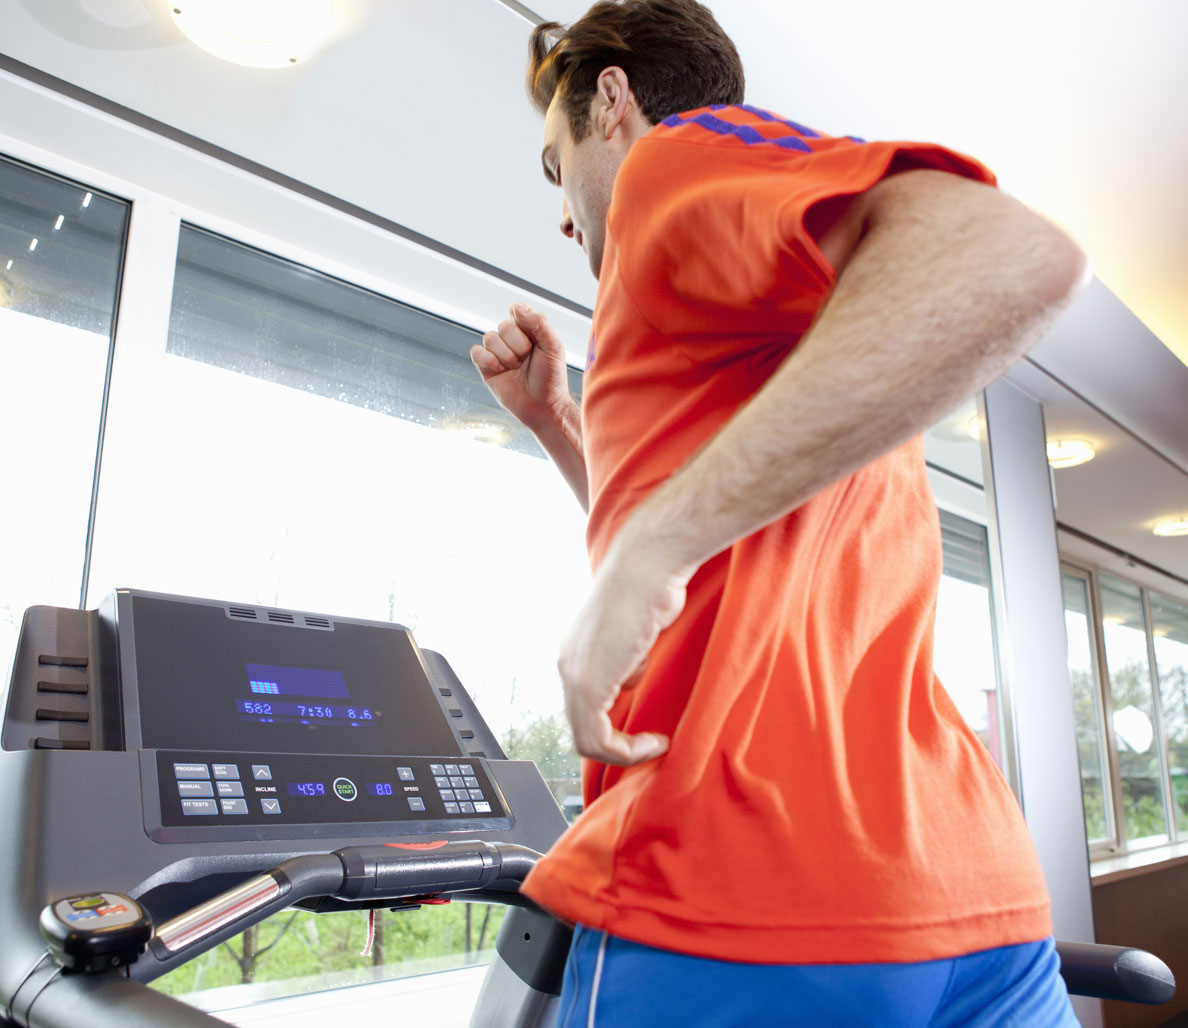 8 Treadmill Interval Workouts To Help You PR